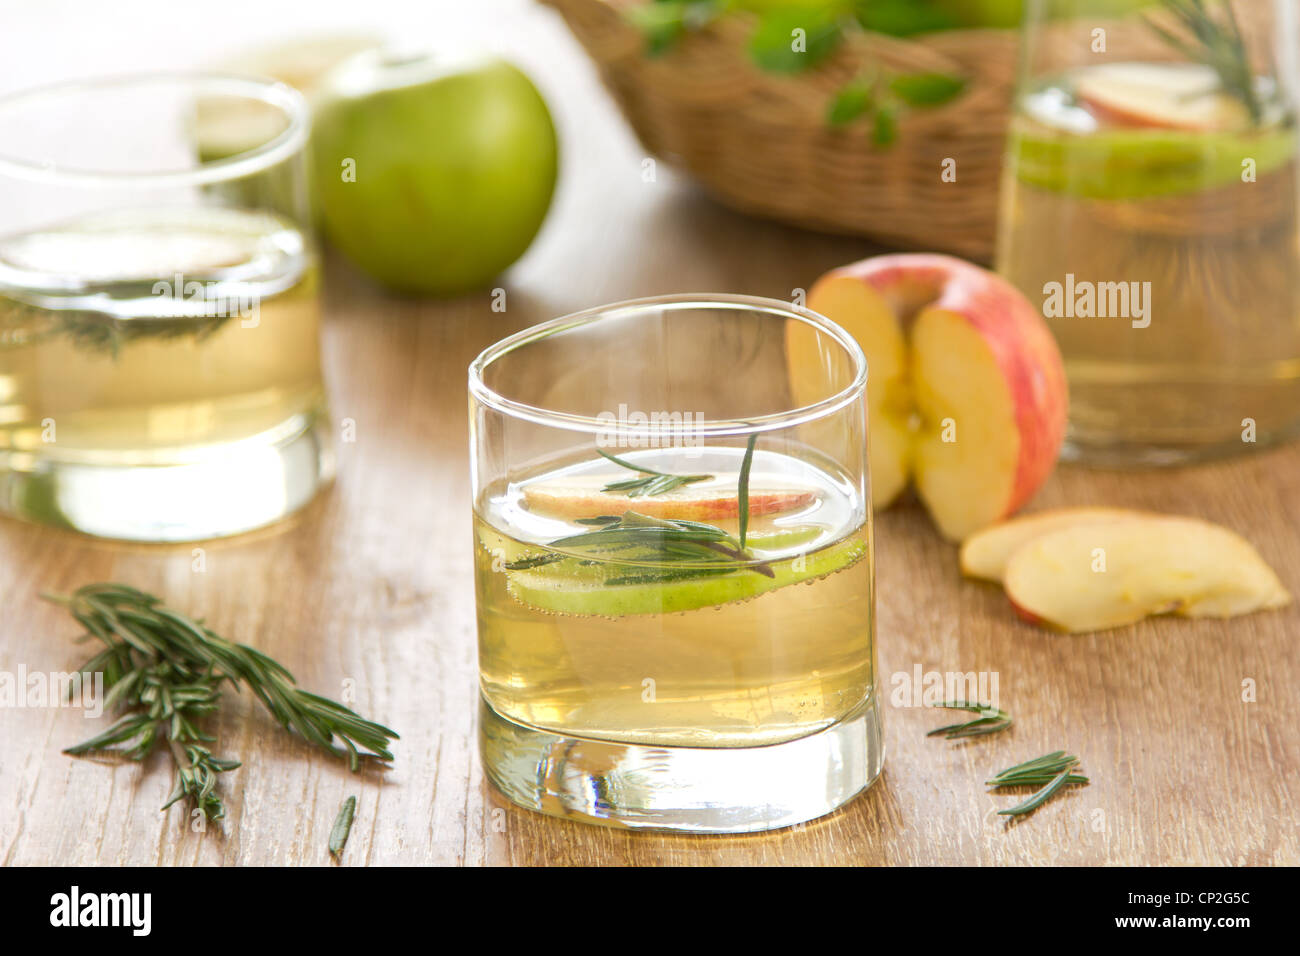 Apple juice with rosemary - Stock Image